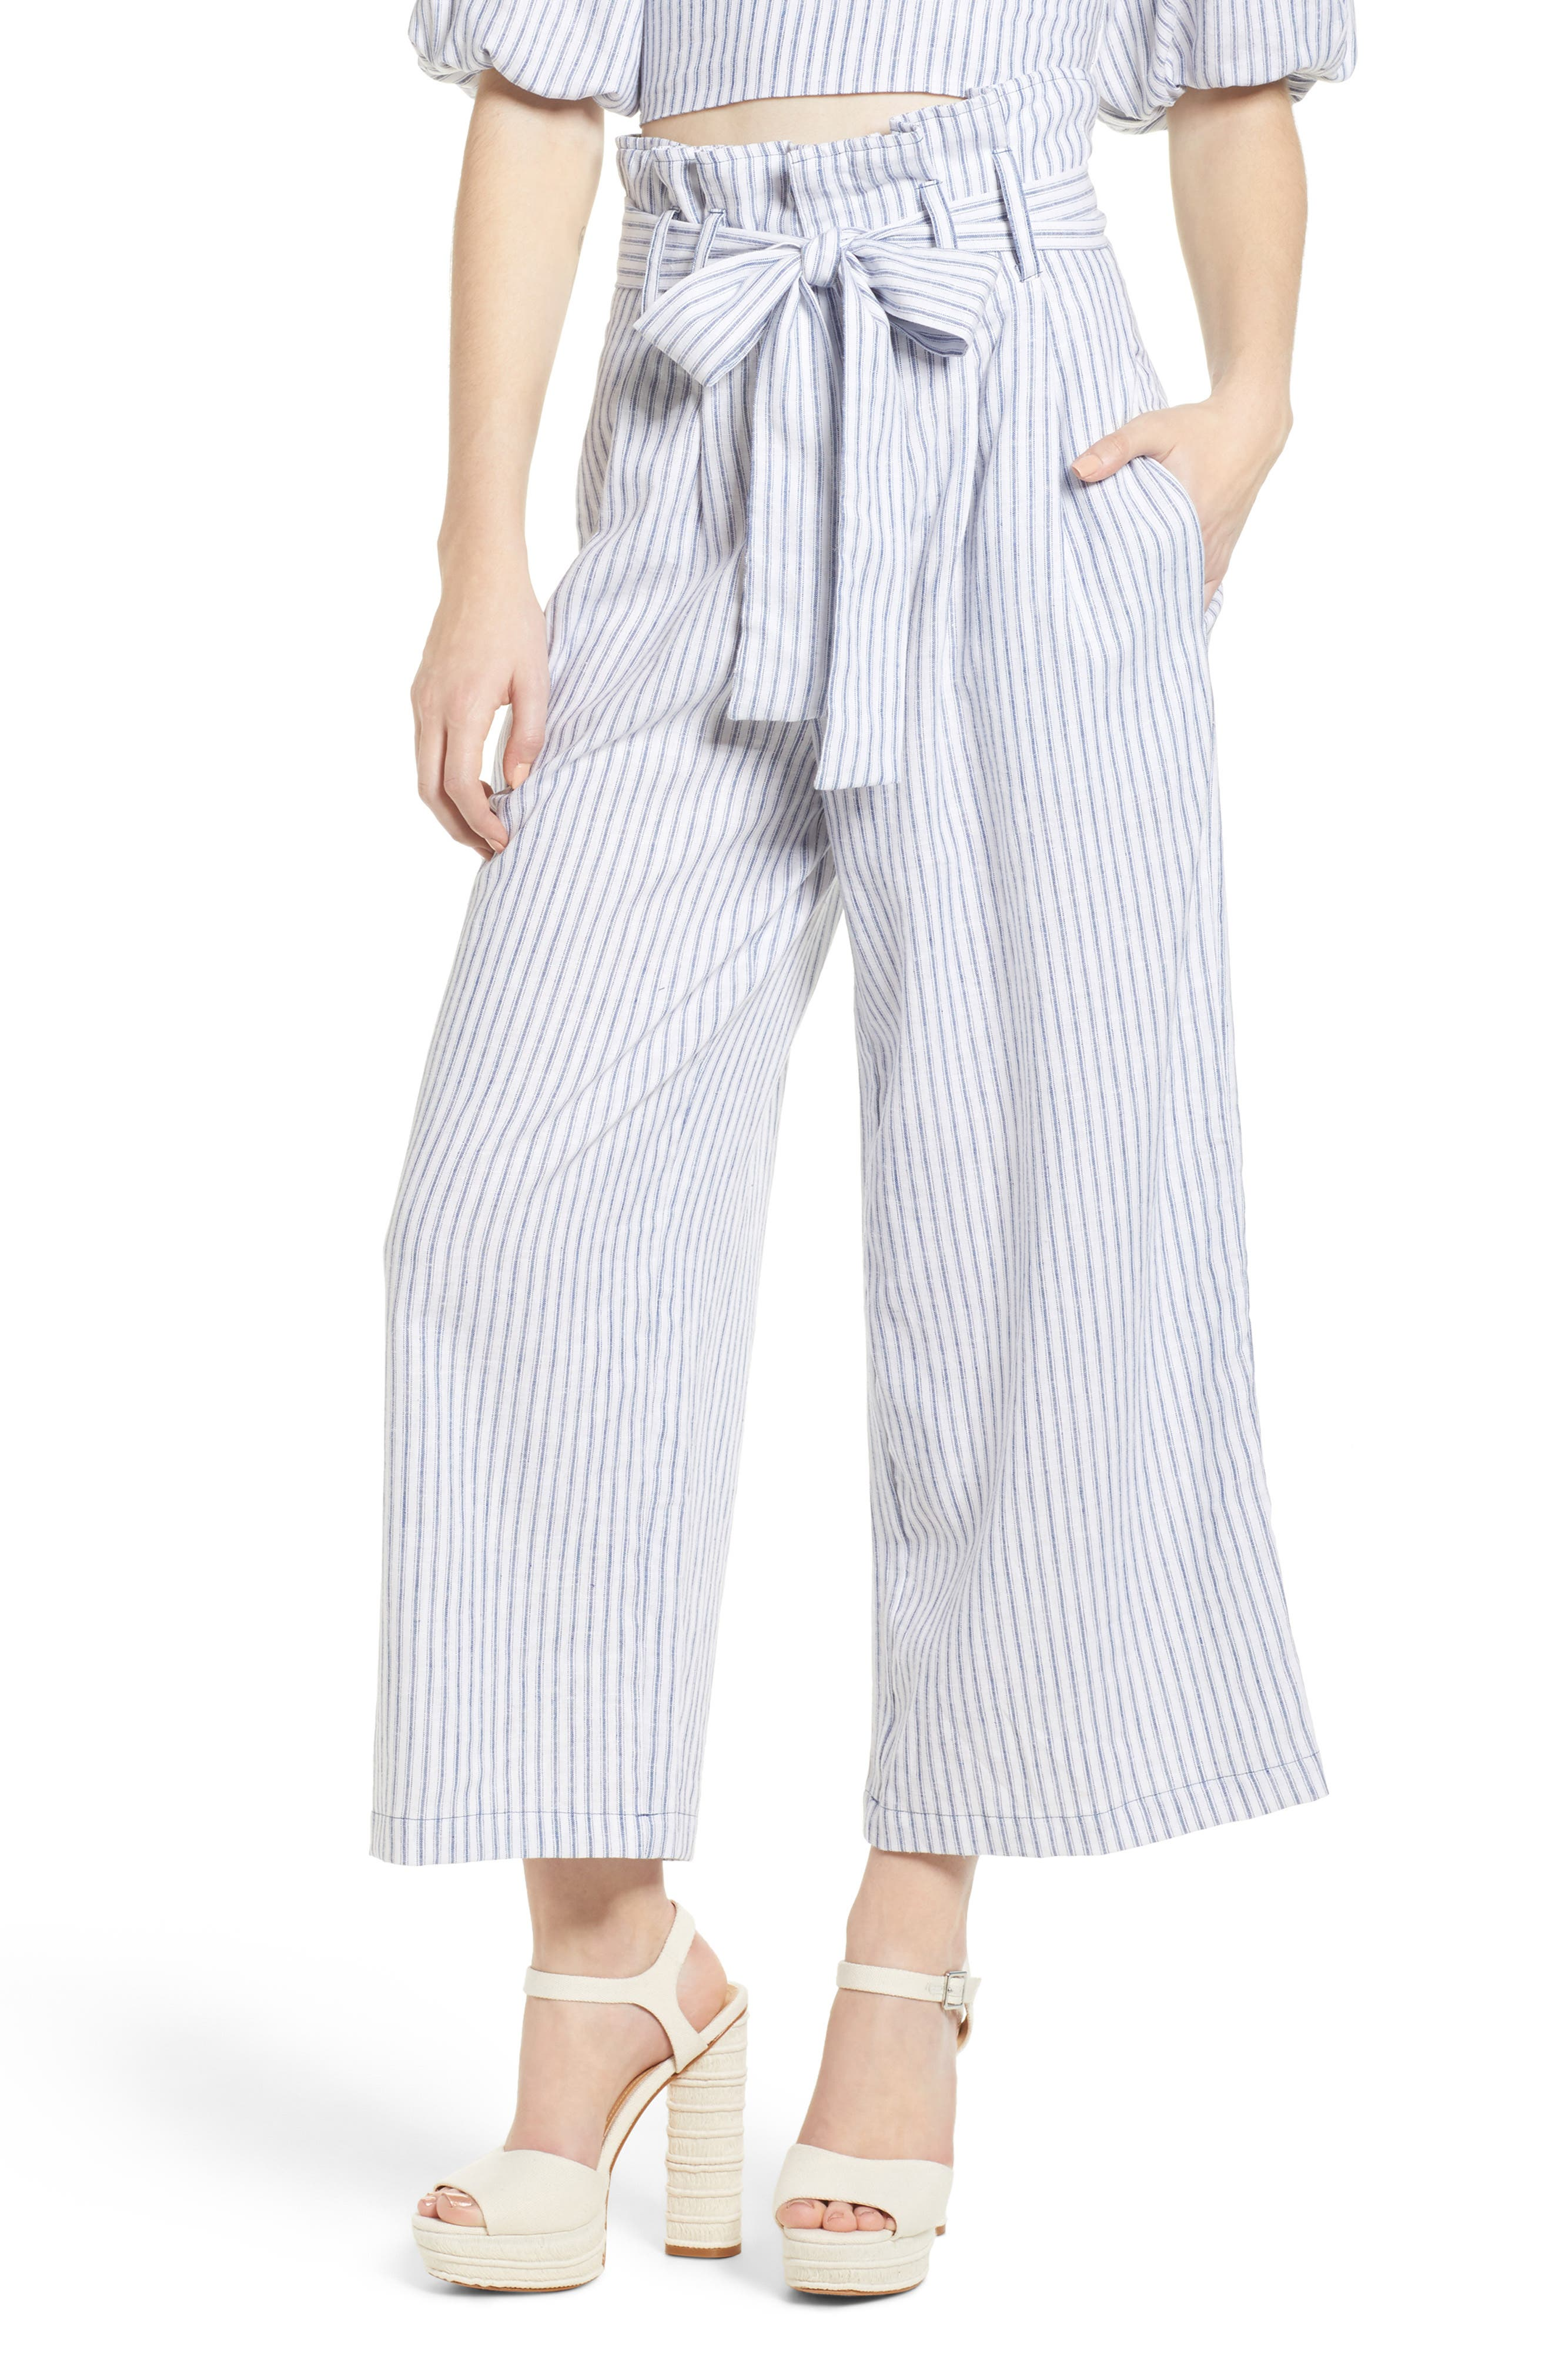 Leith Relaxed Tie Waist Pant